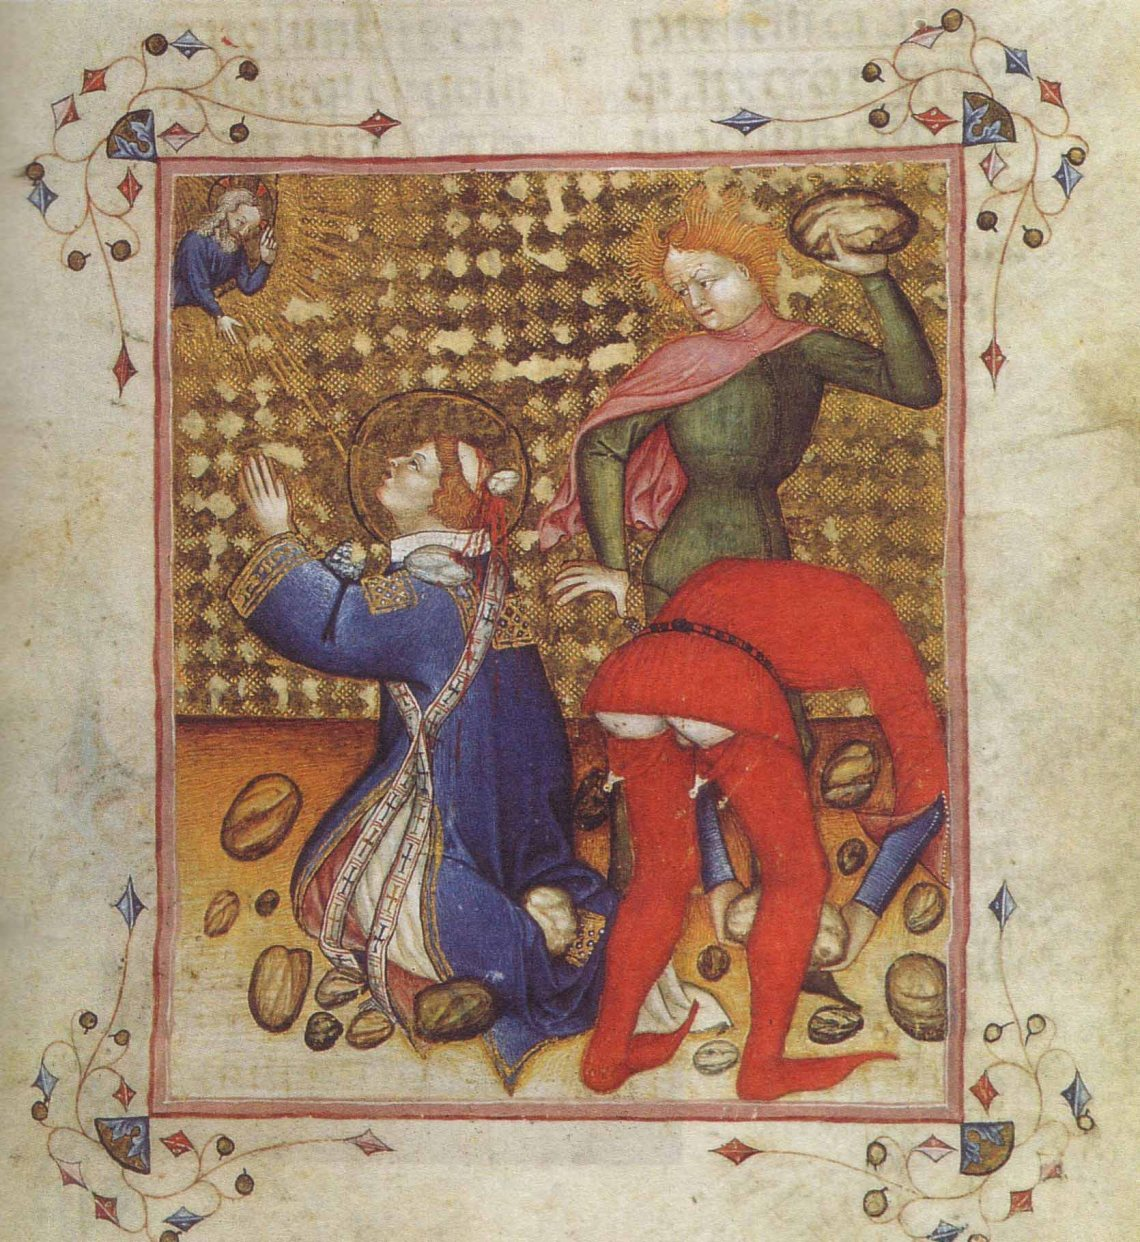 Martydom of St Stephen, illuminated manuscript, 1380c, Bibliotheque Nationale de France